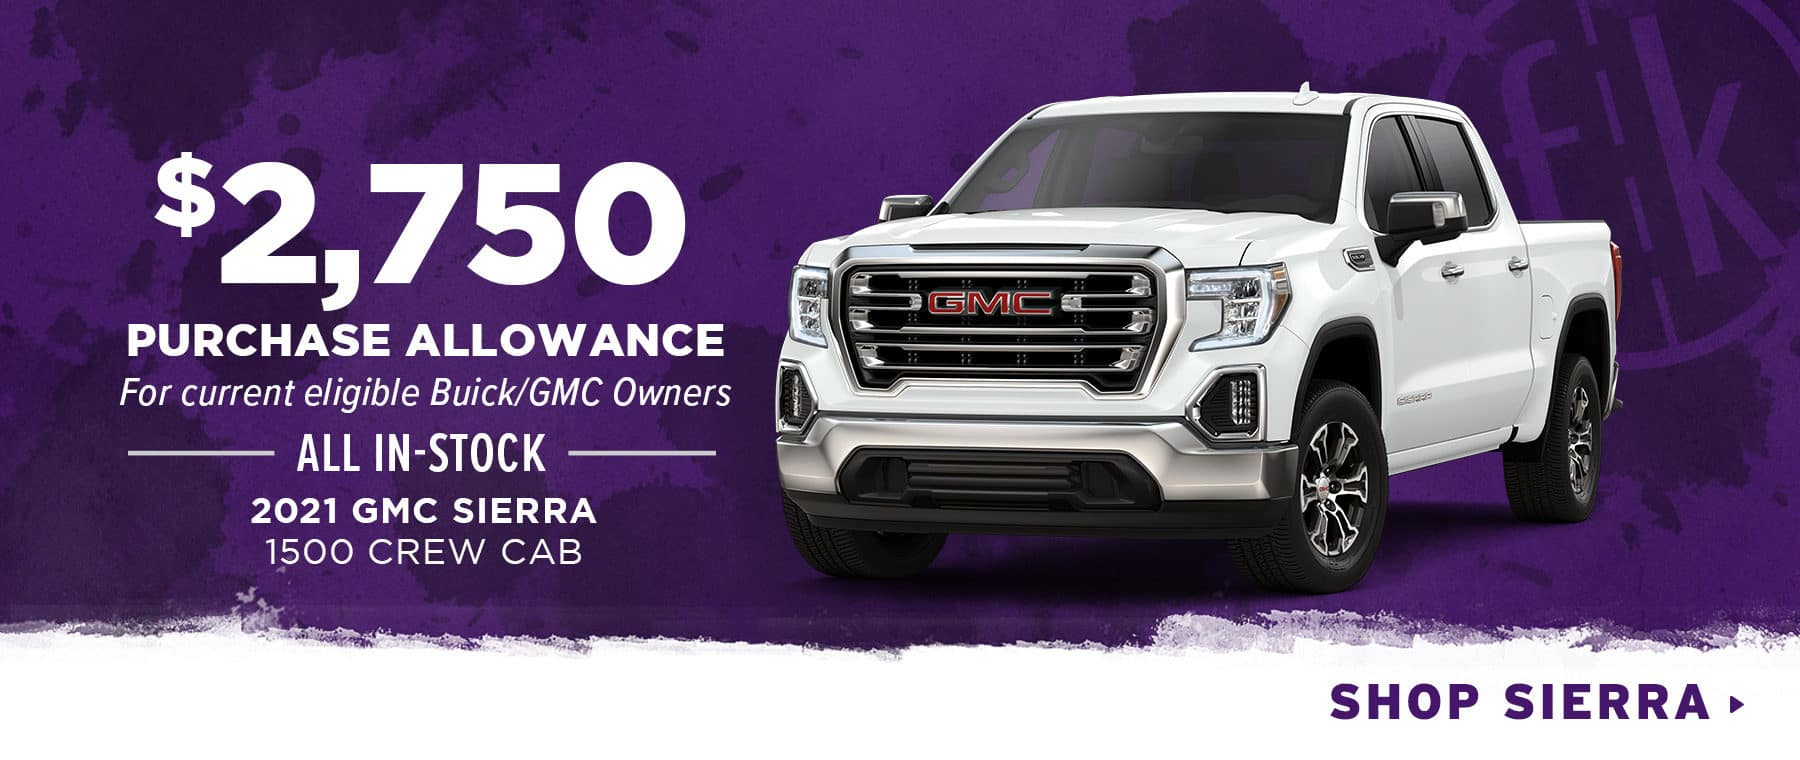 $2,750 Purchase Allowance For Current Eligible Buick/GMC Owners All In-Stock 2021 GMC Sierra 1500 Crew Cab